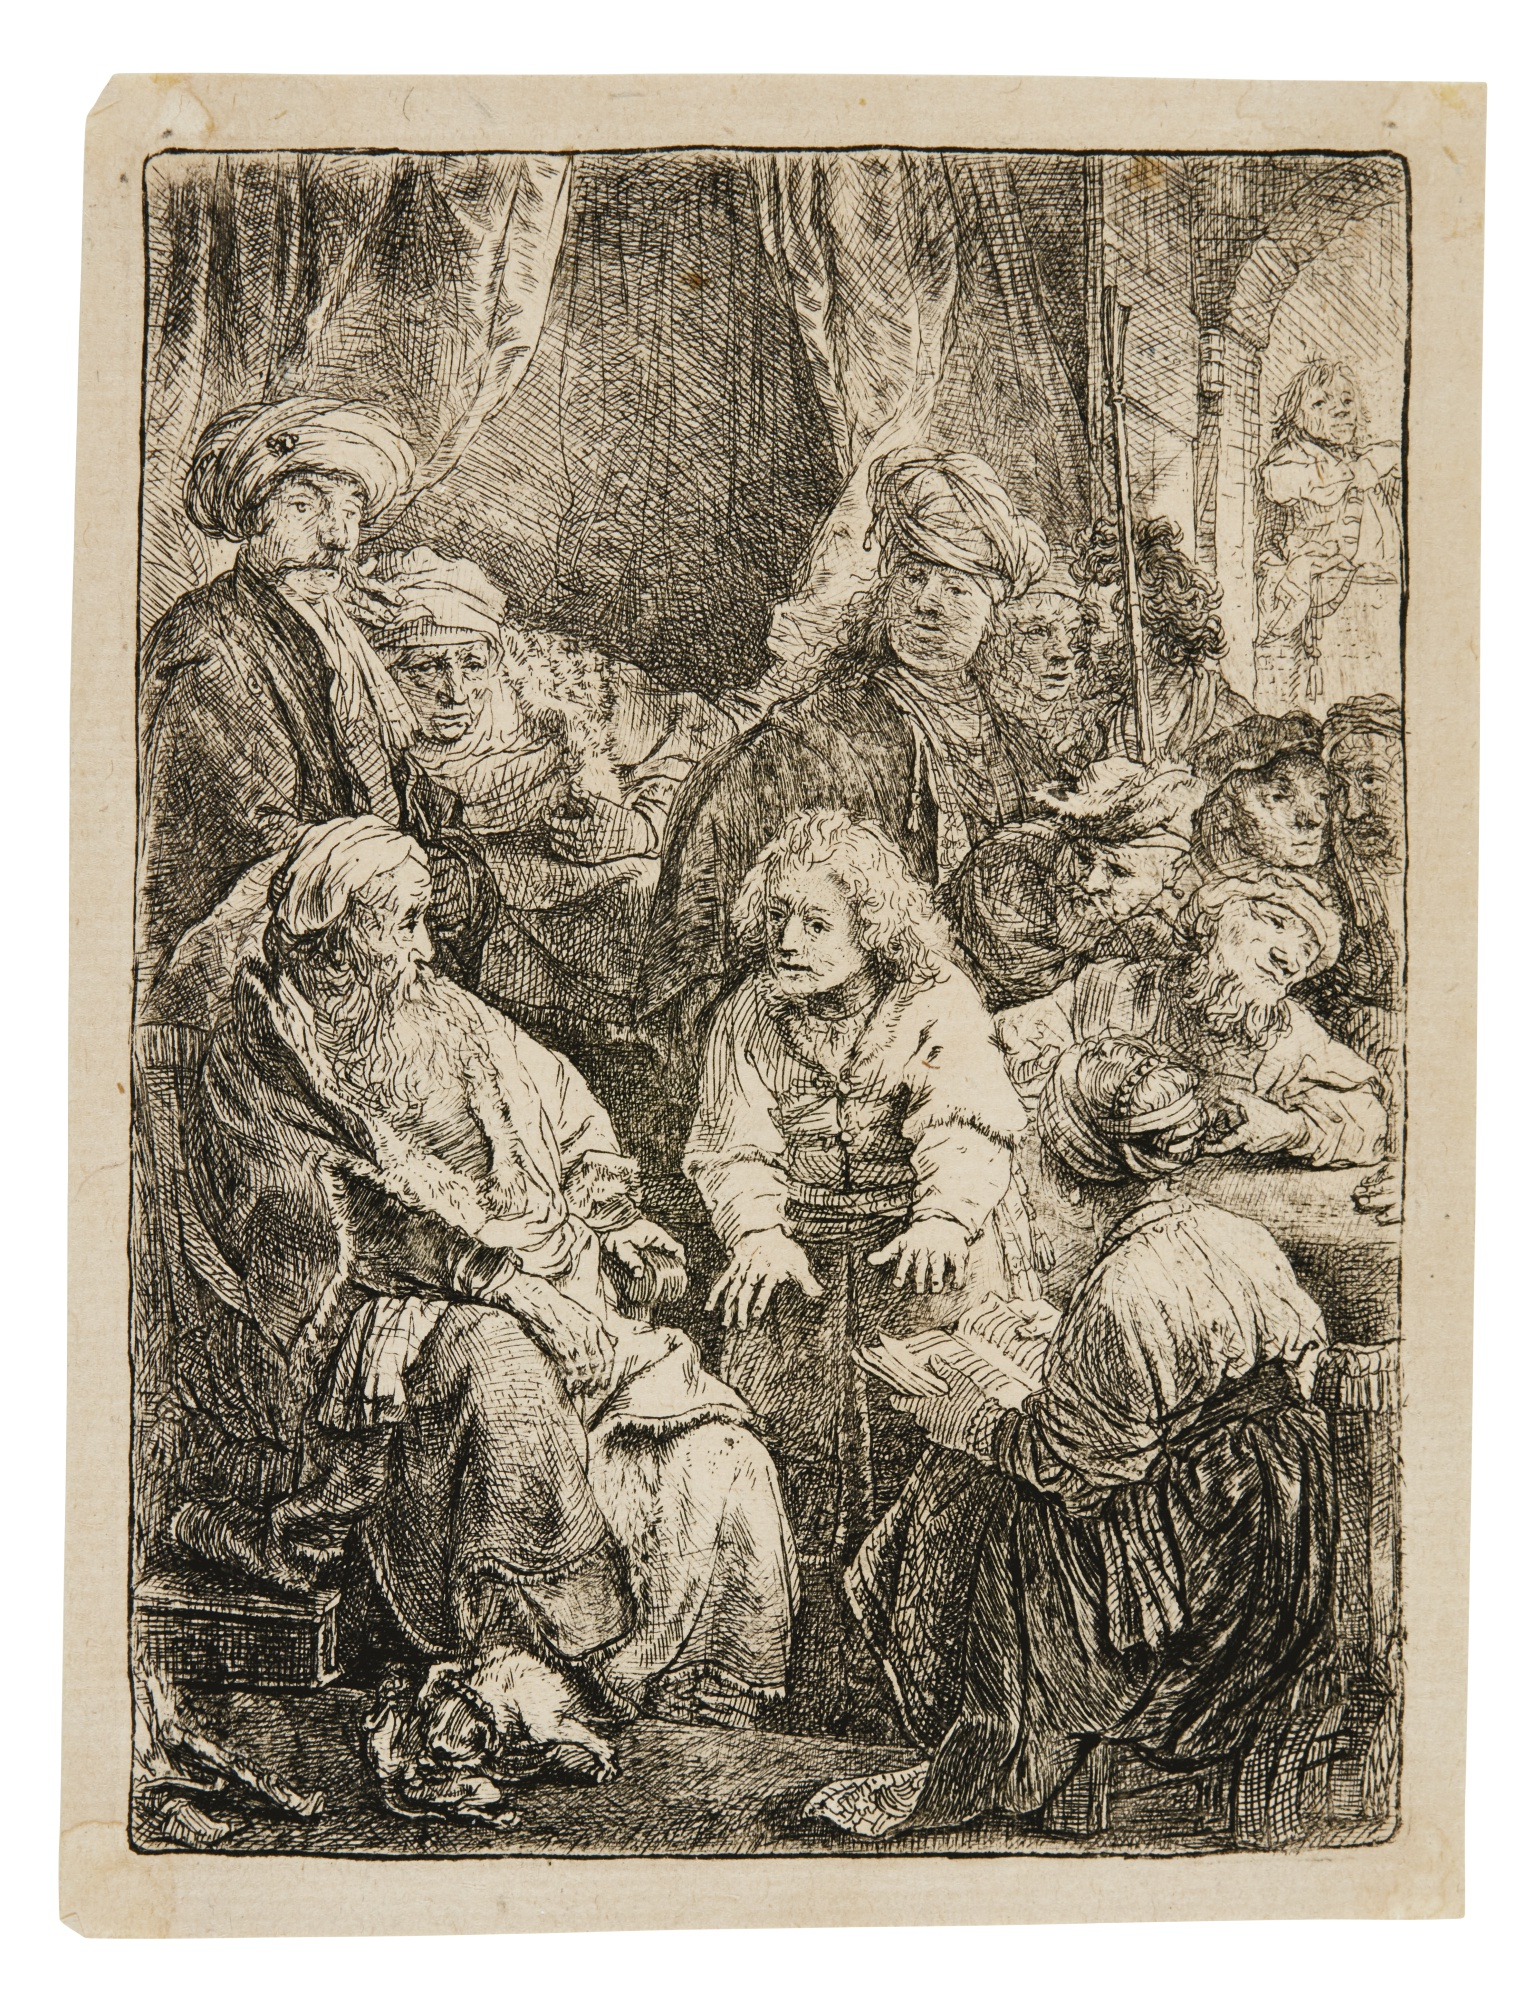 Rembrandt van Rijn-Joseph Telling His Dreams; And Menasseh Ben Israel (B. Holl. 37 269; New Holl. 167 156; H. 160 146)-1638